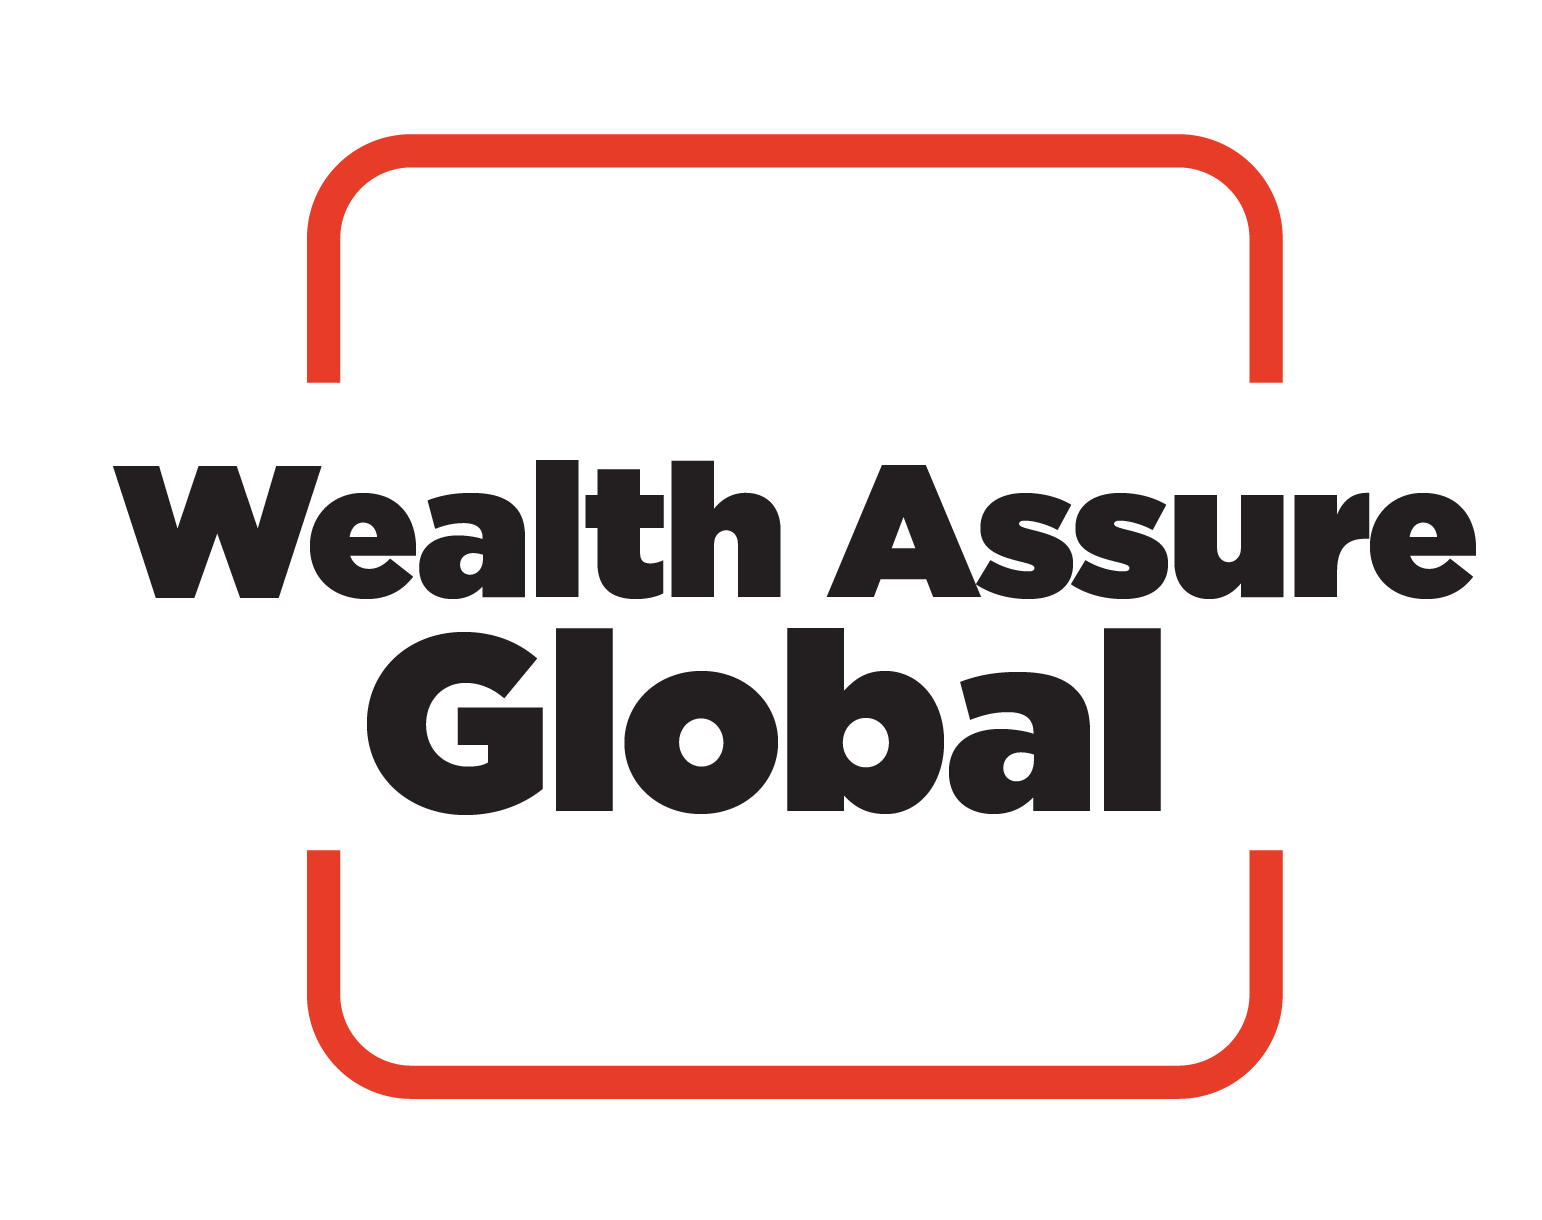 Wealth assure global logo